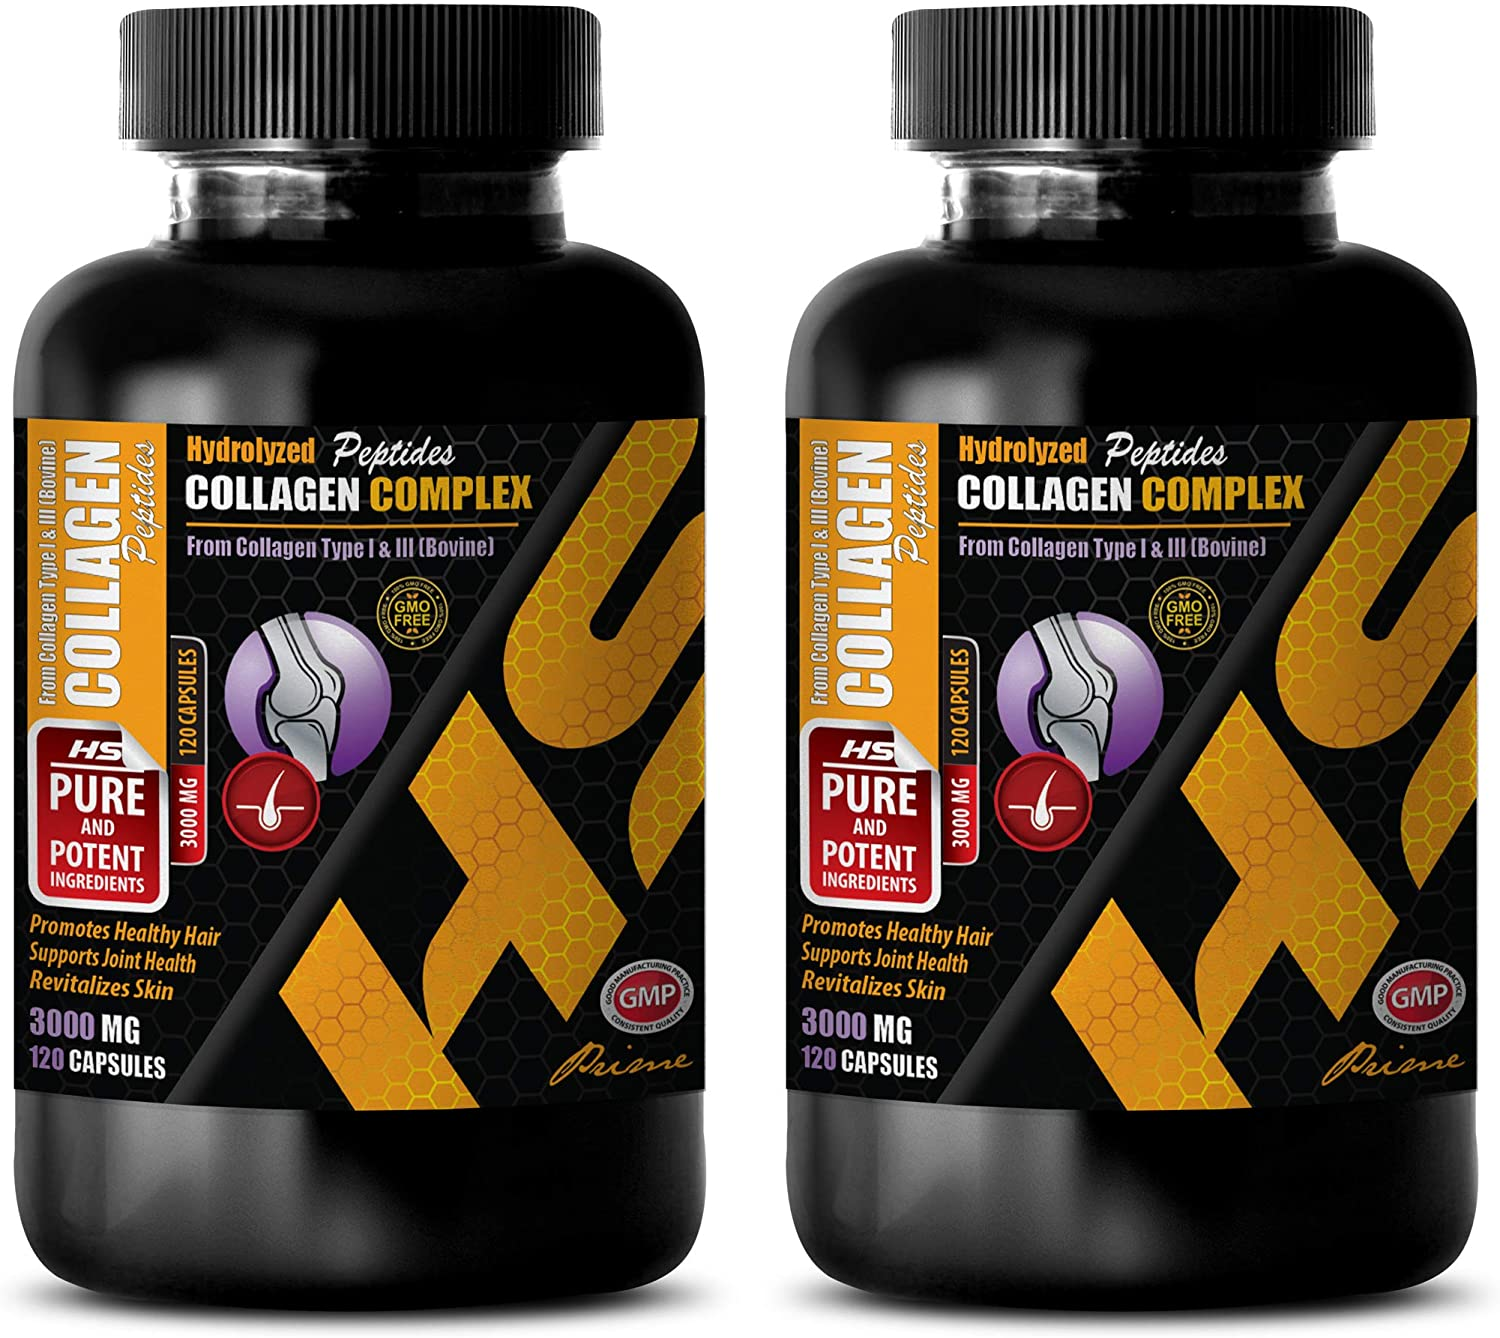 Hair, Skin and Nails Supplement - HYDROLYZED PEPTIDES Collagen 3000MG Formula - Natural Health Support - Collagen Collagen Powder - 2 Bottles (240 Capsules)